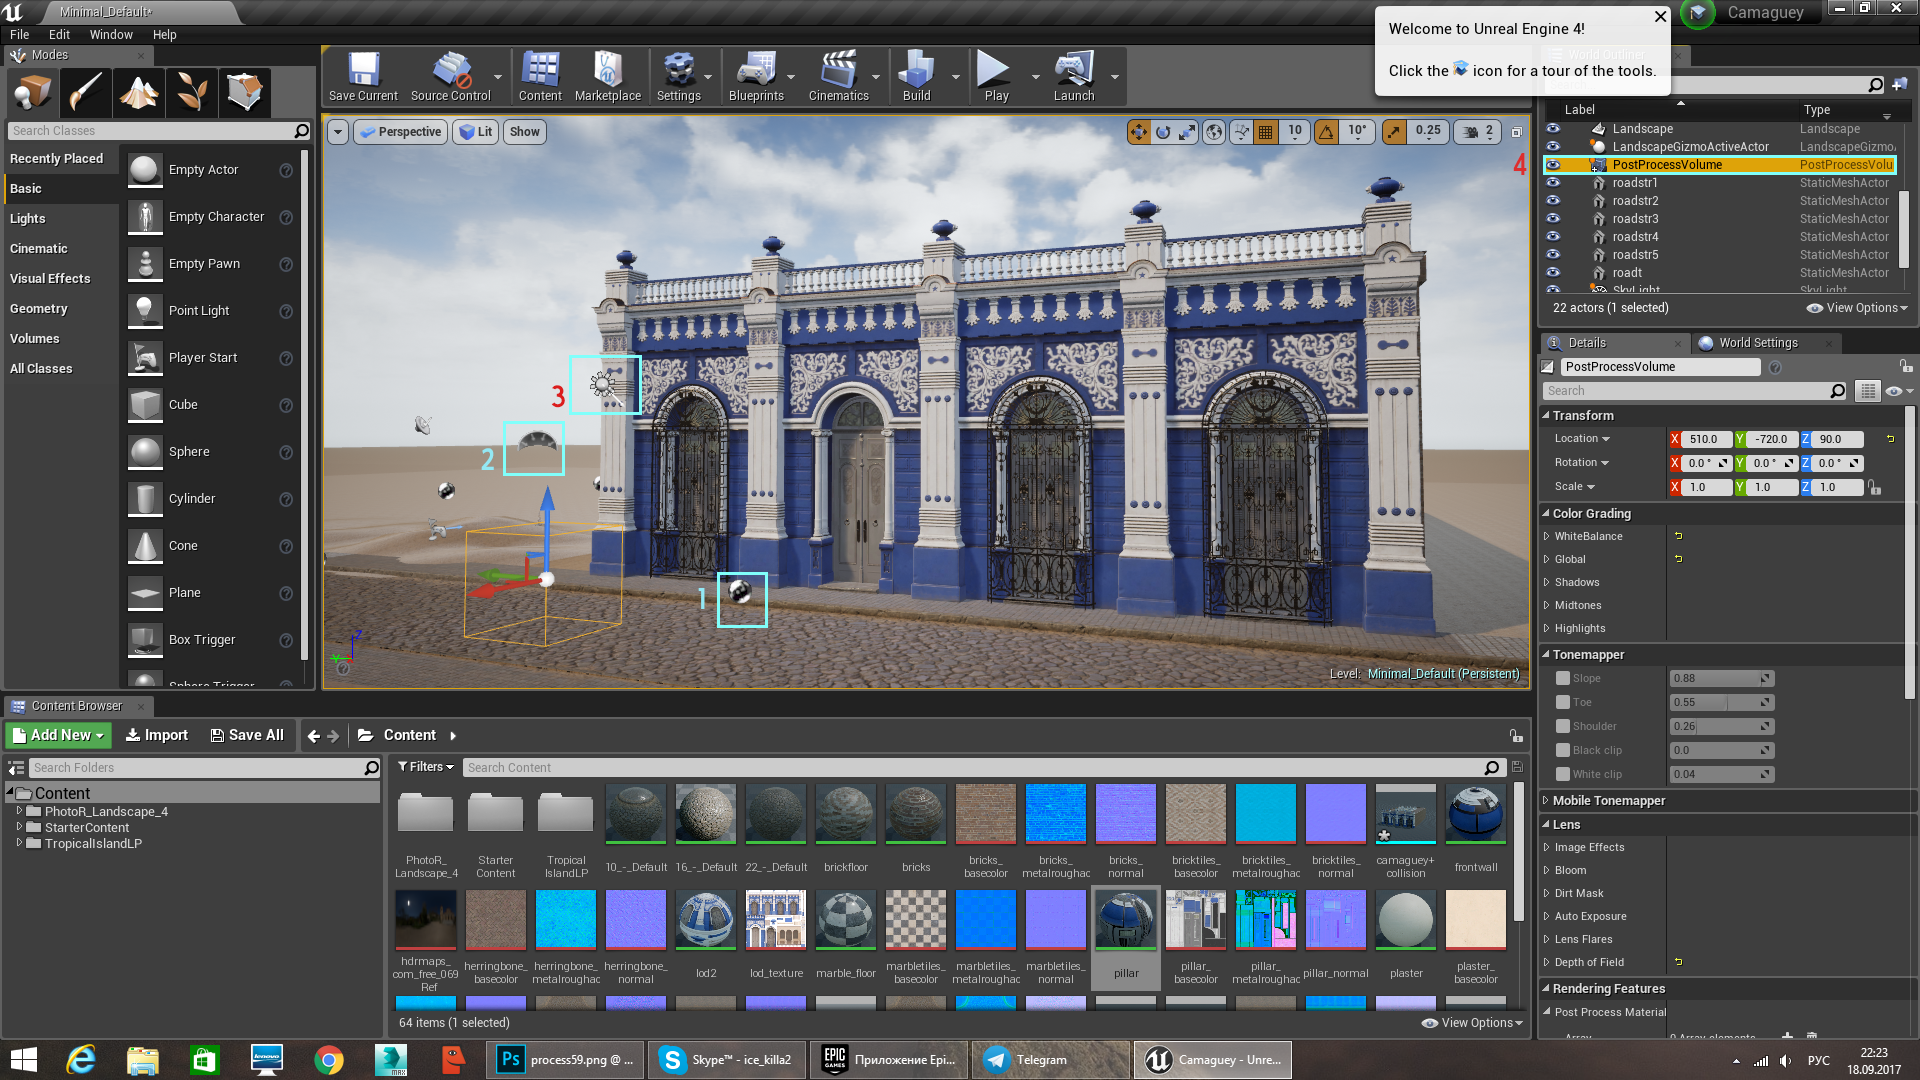 Render settings in UE4